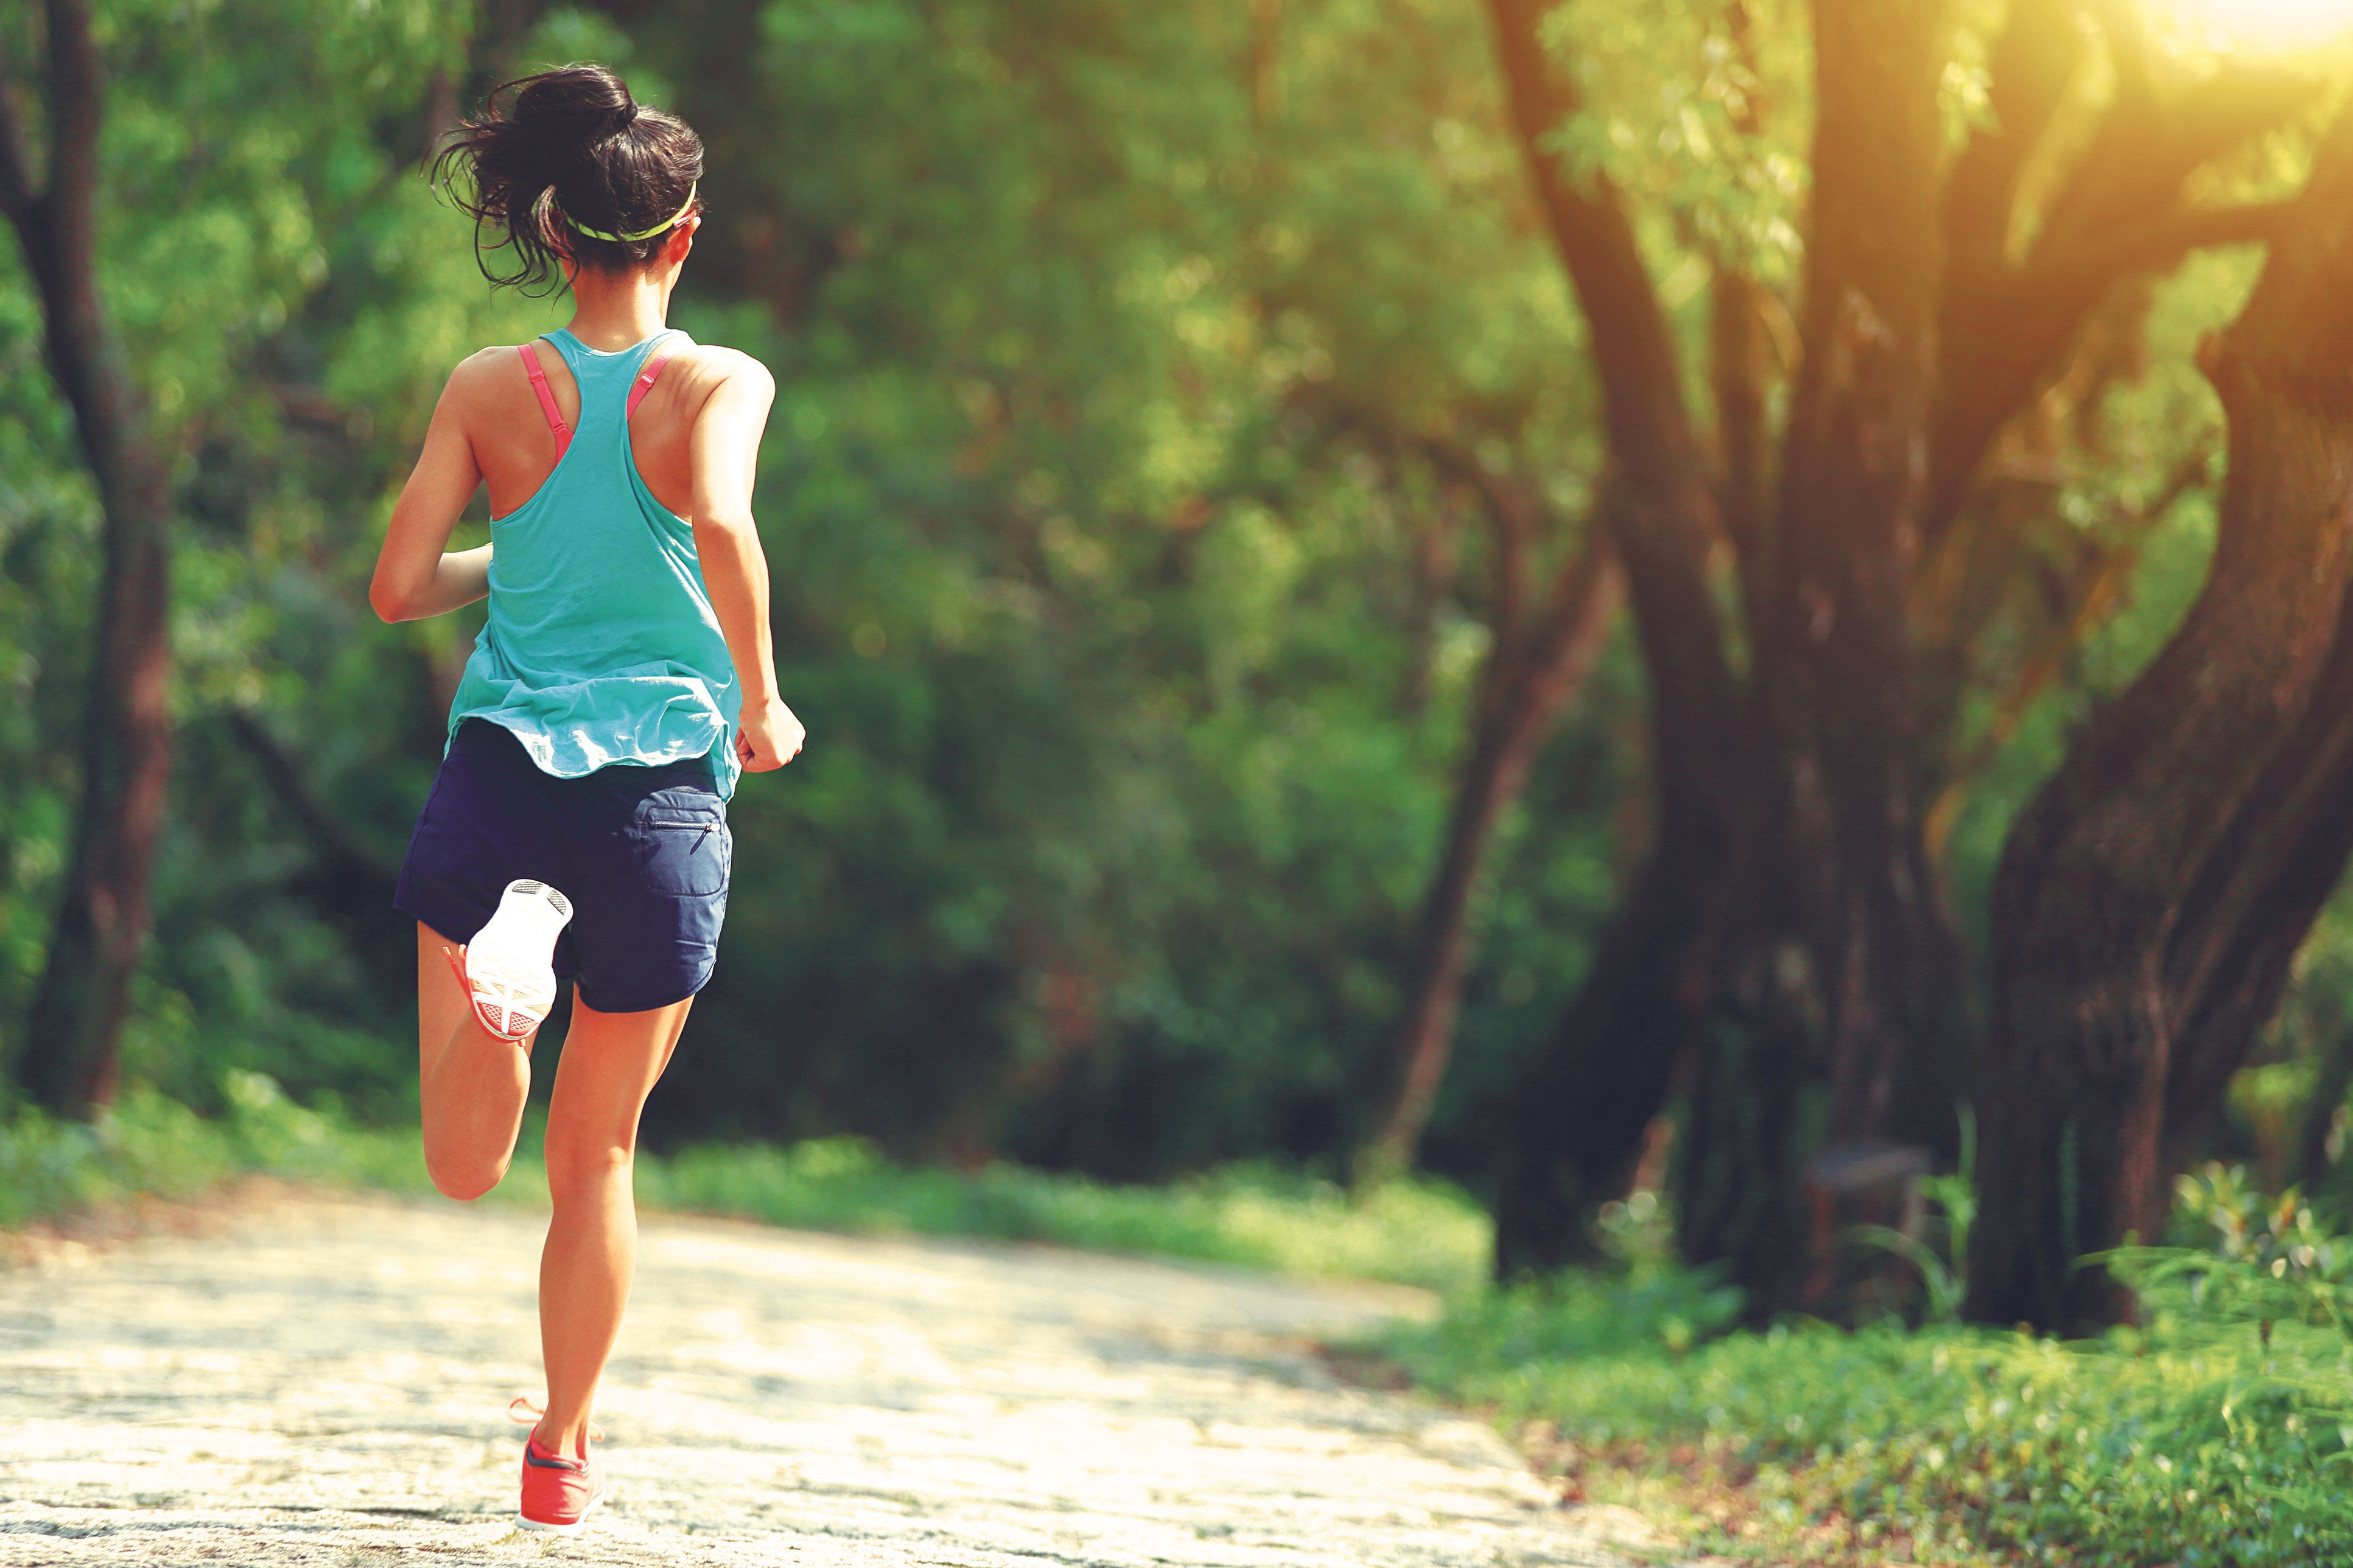 Exercise Improves Brain Function In People With Schizophrenia, Study